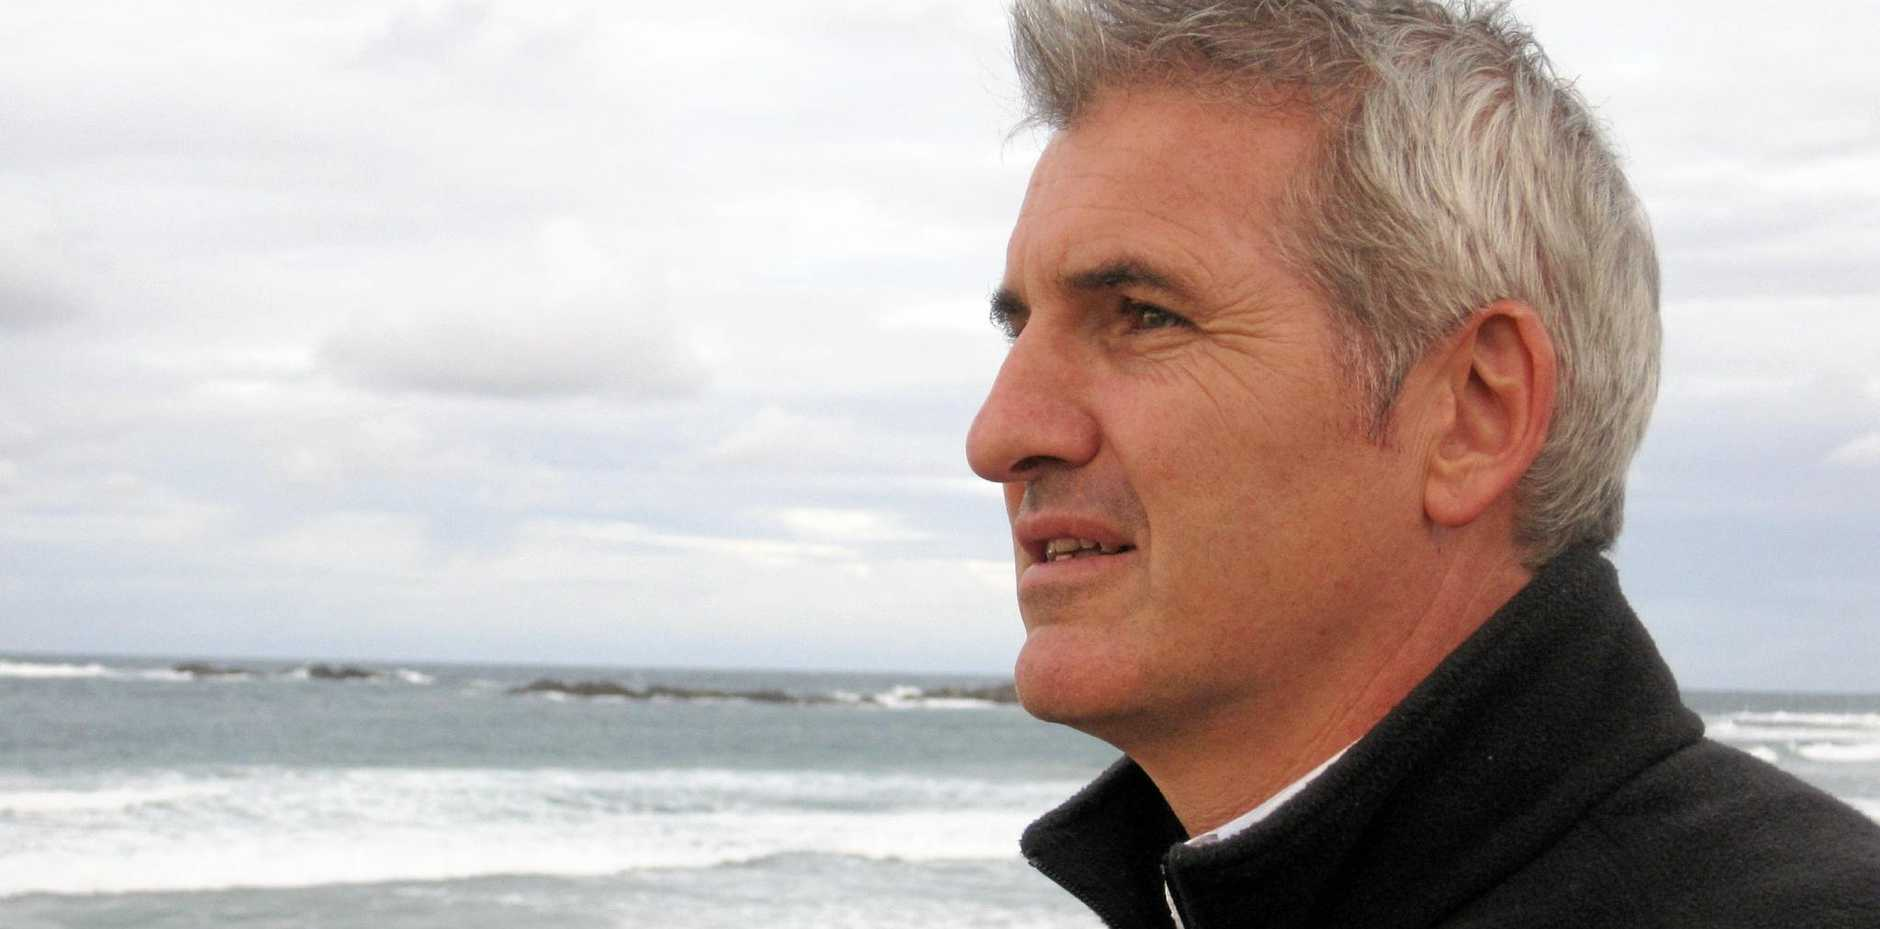 Bellingen's new mayor Dominic King is the shire's first Greens member in the top job.